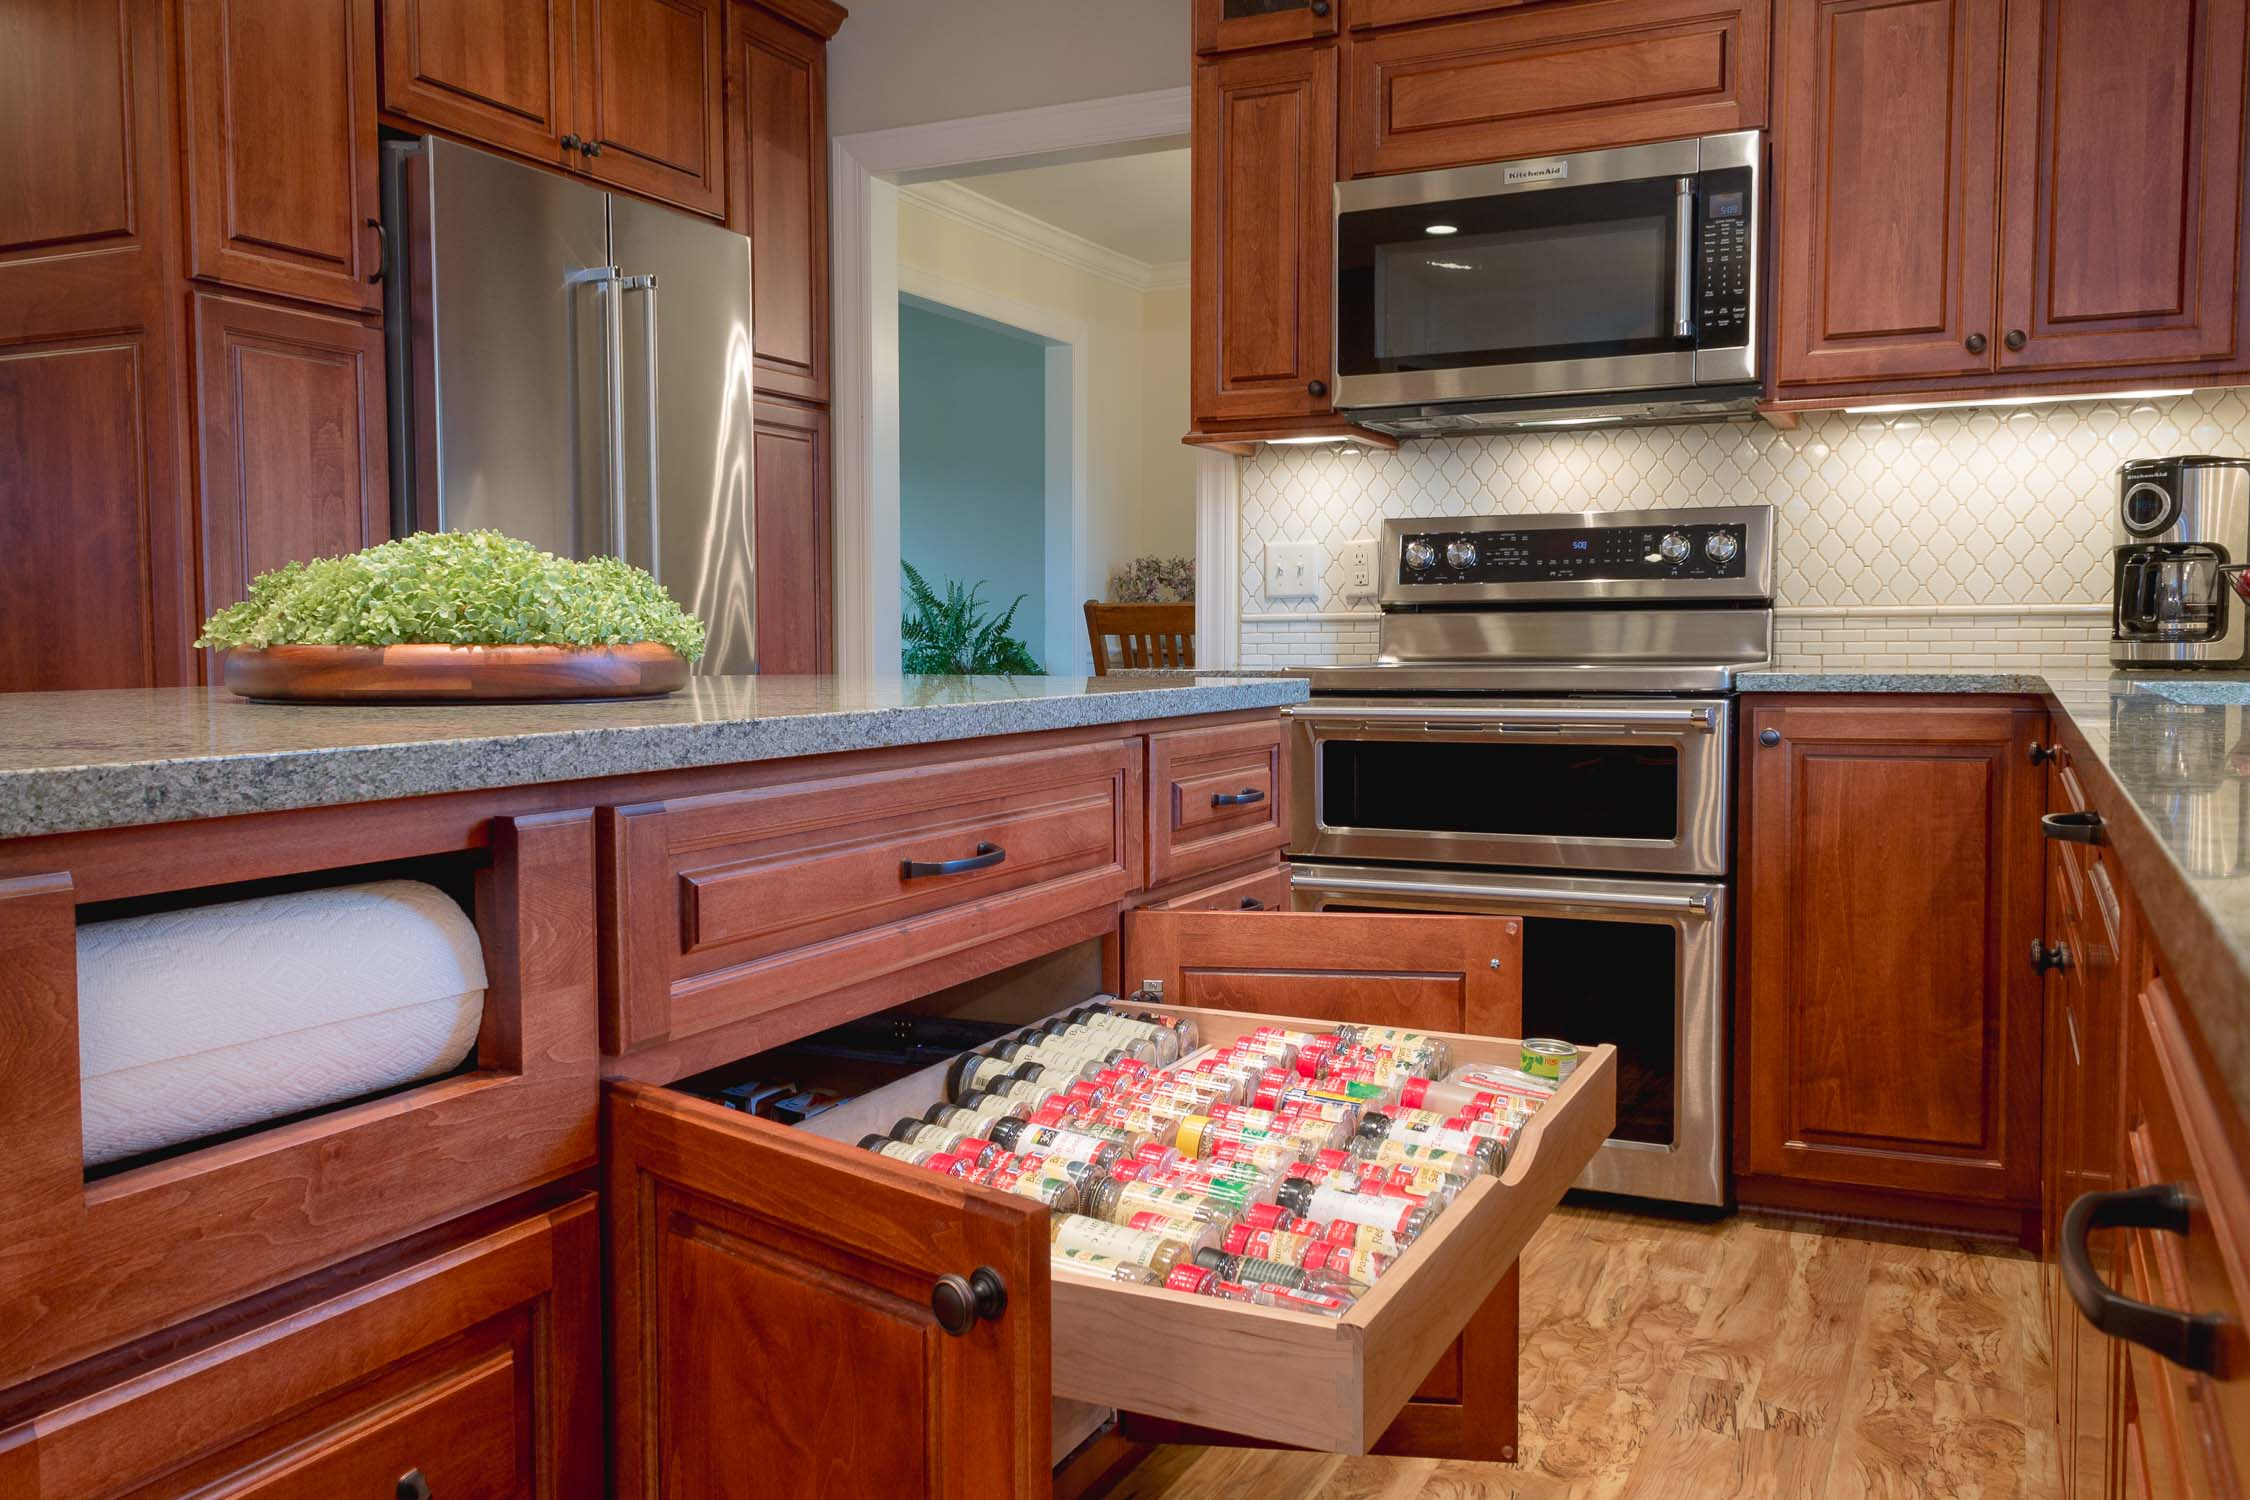 - This kitchen provides creative storage solutions including decorative transom cabinets (barely visible top left of microwave) and built-in spice drawer and paper towel holders. Click any photo to see more on these projects.